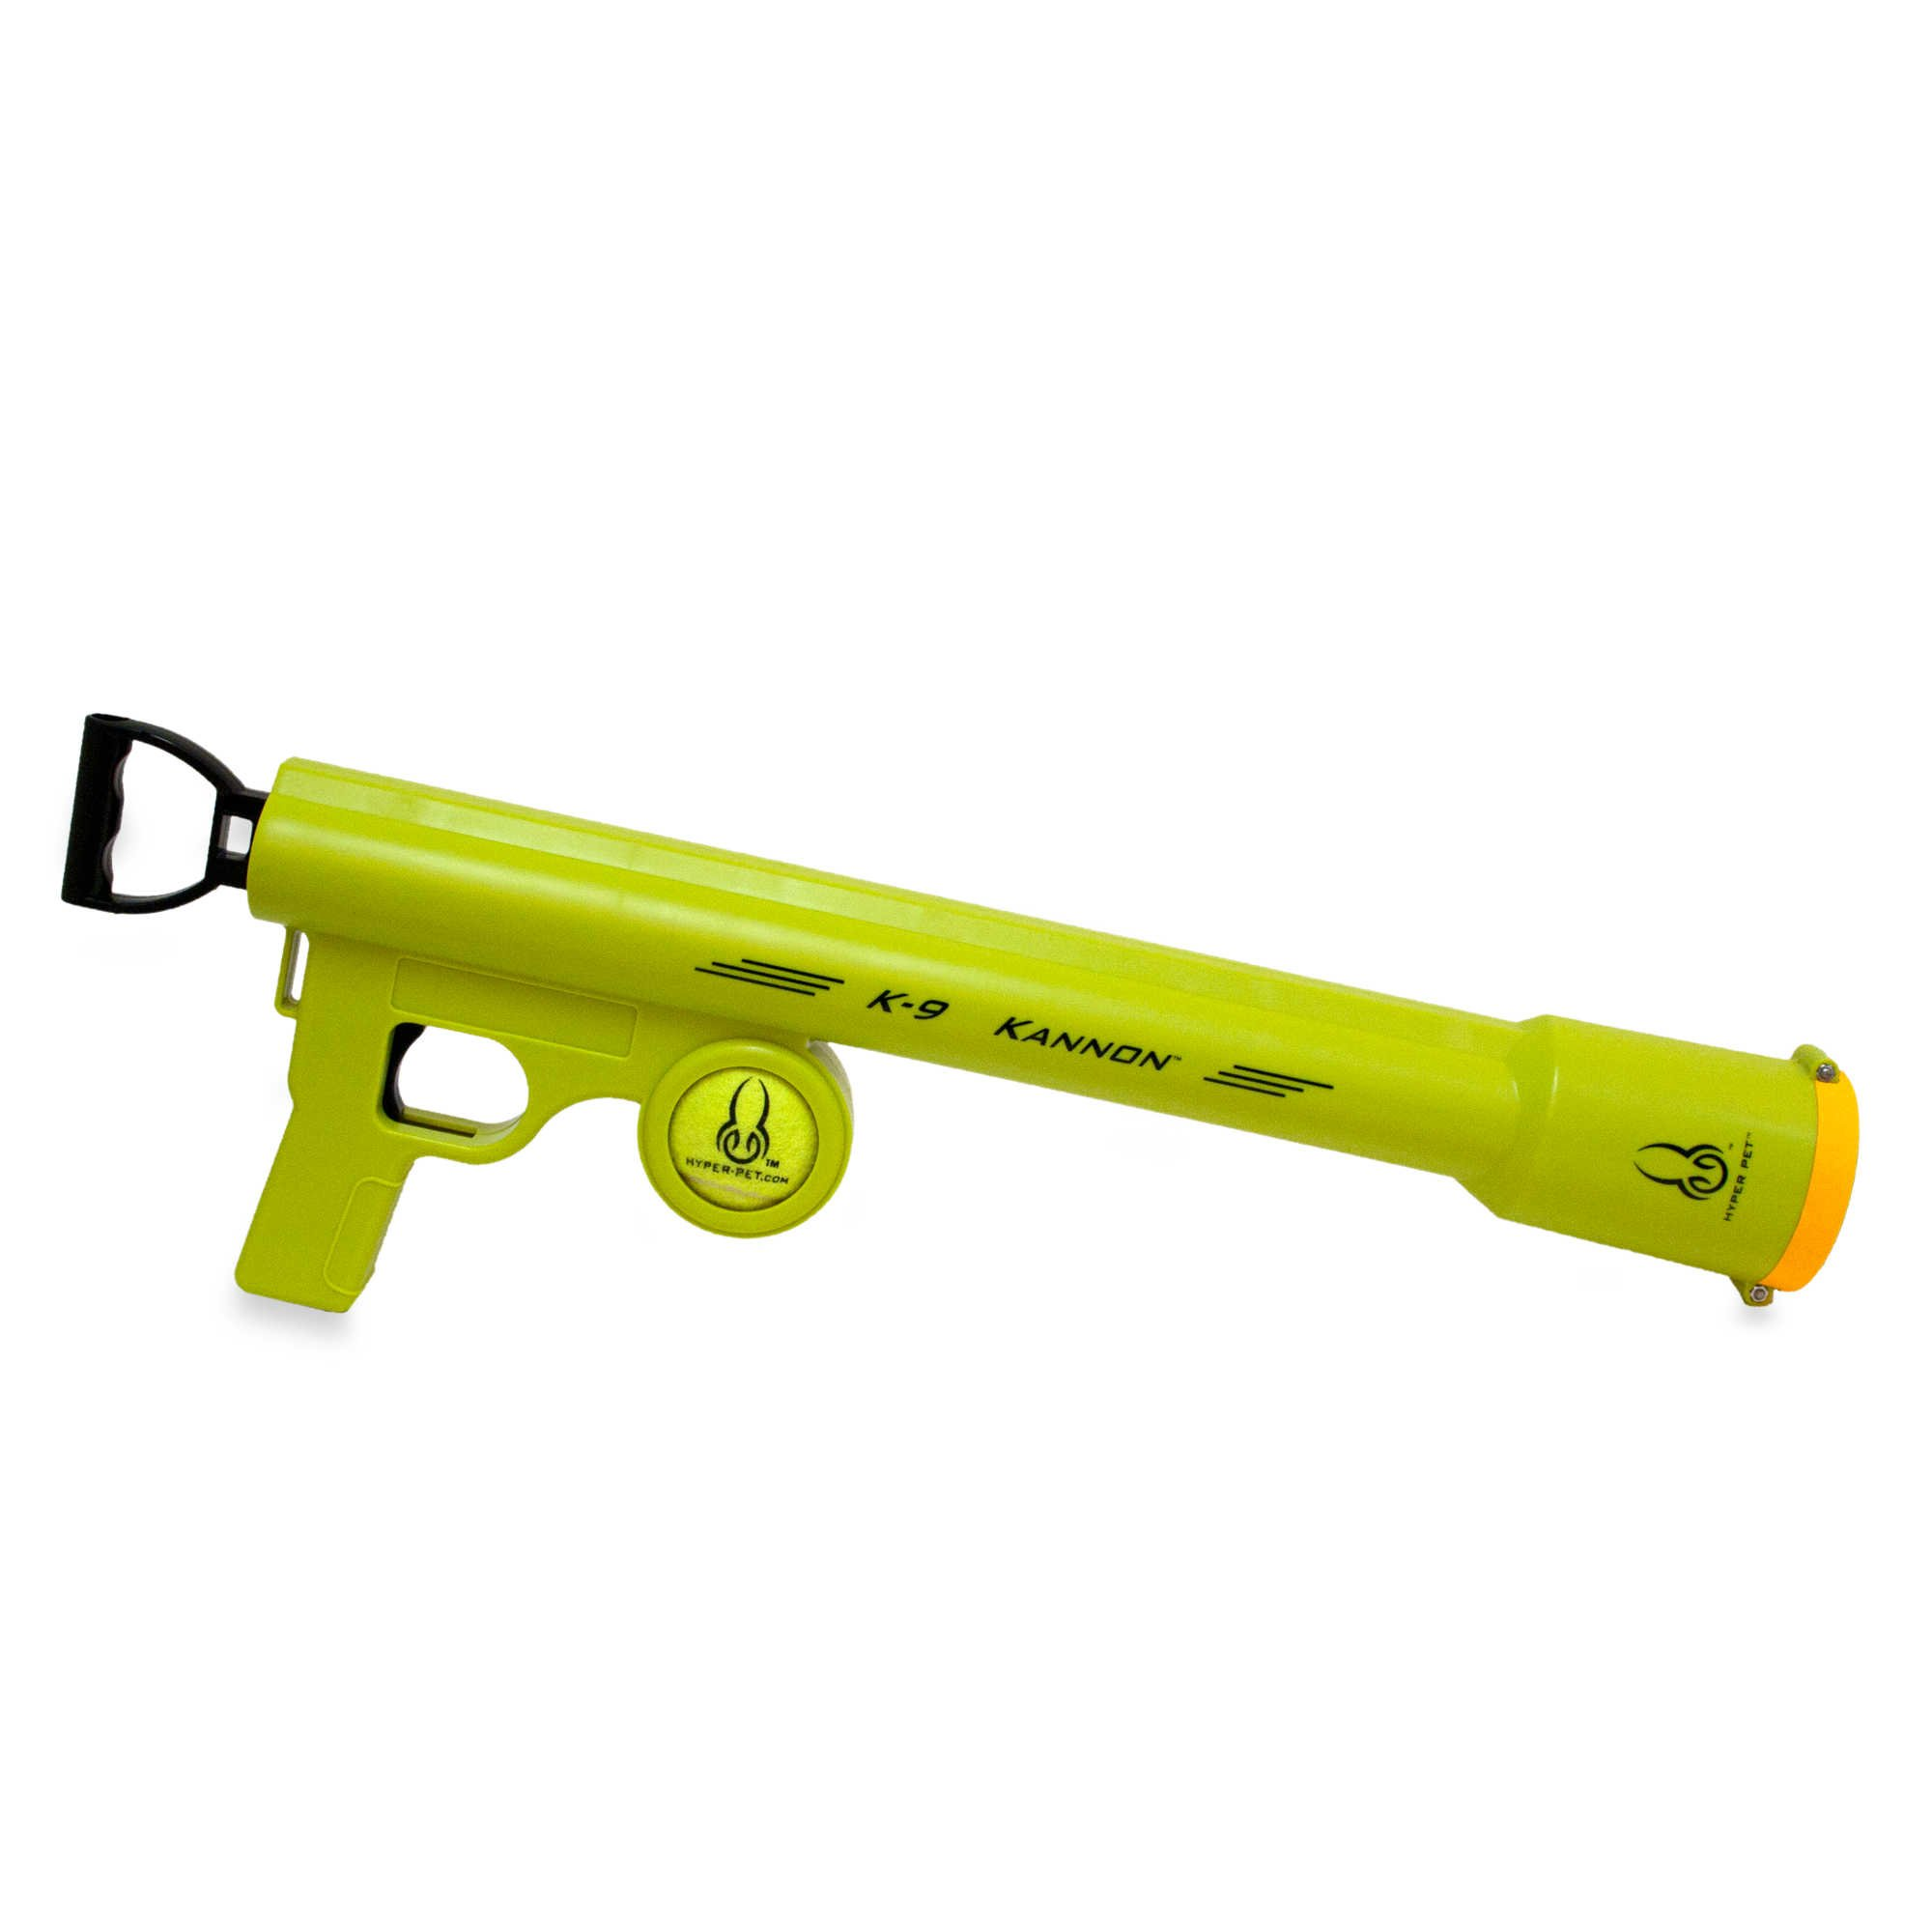 Hyper PetTM K-9 KannonTM Tennis Ball Launcher by Hyper Pet